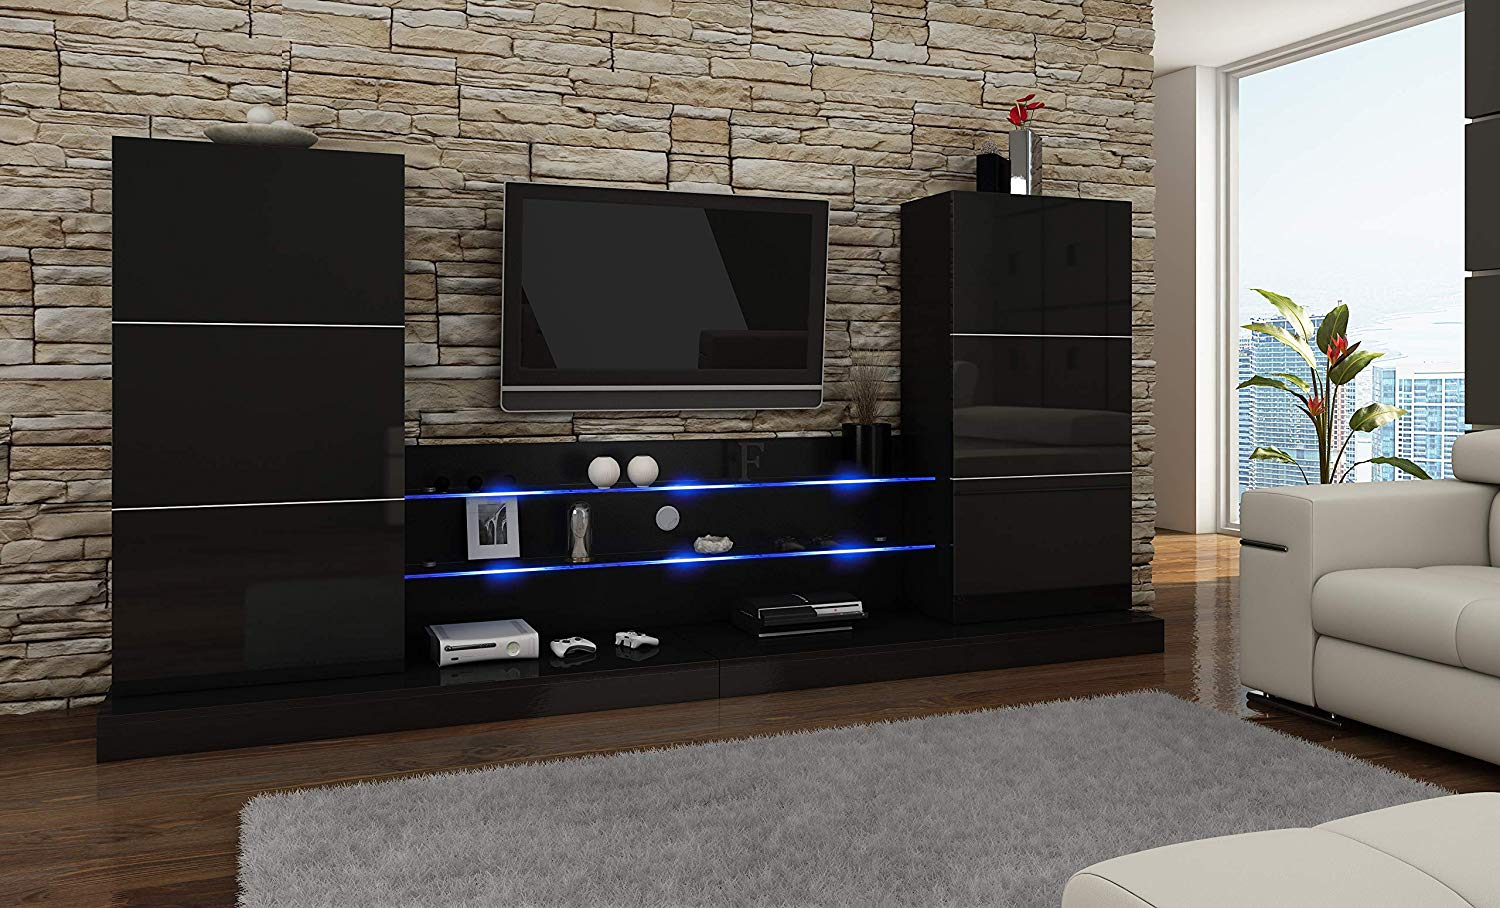 73cd65f5f3e87a Ulm Modern Entertainment Center Wall Unit with LED Lights 70